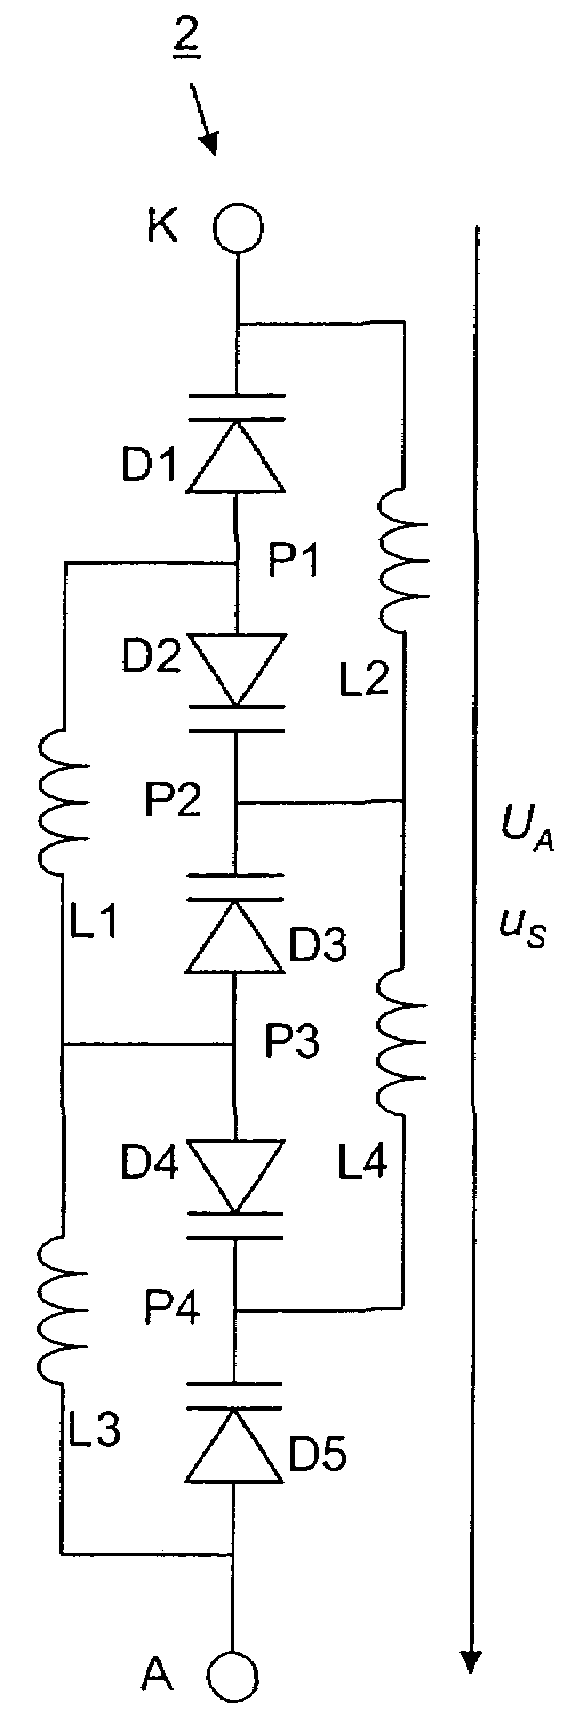 Patent Us7567120 Varactor Diode Alternative Circuit Google Patents Direct Fm Modulation Diagram Composed Of Low Drawing